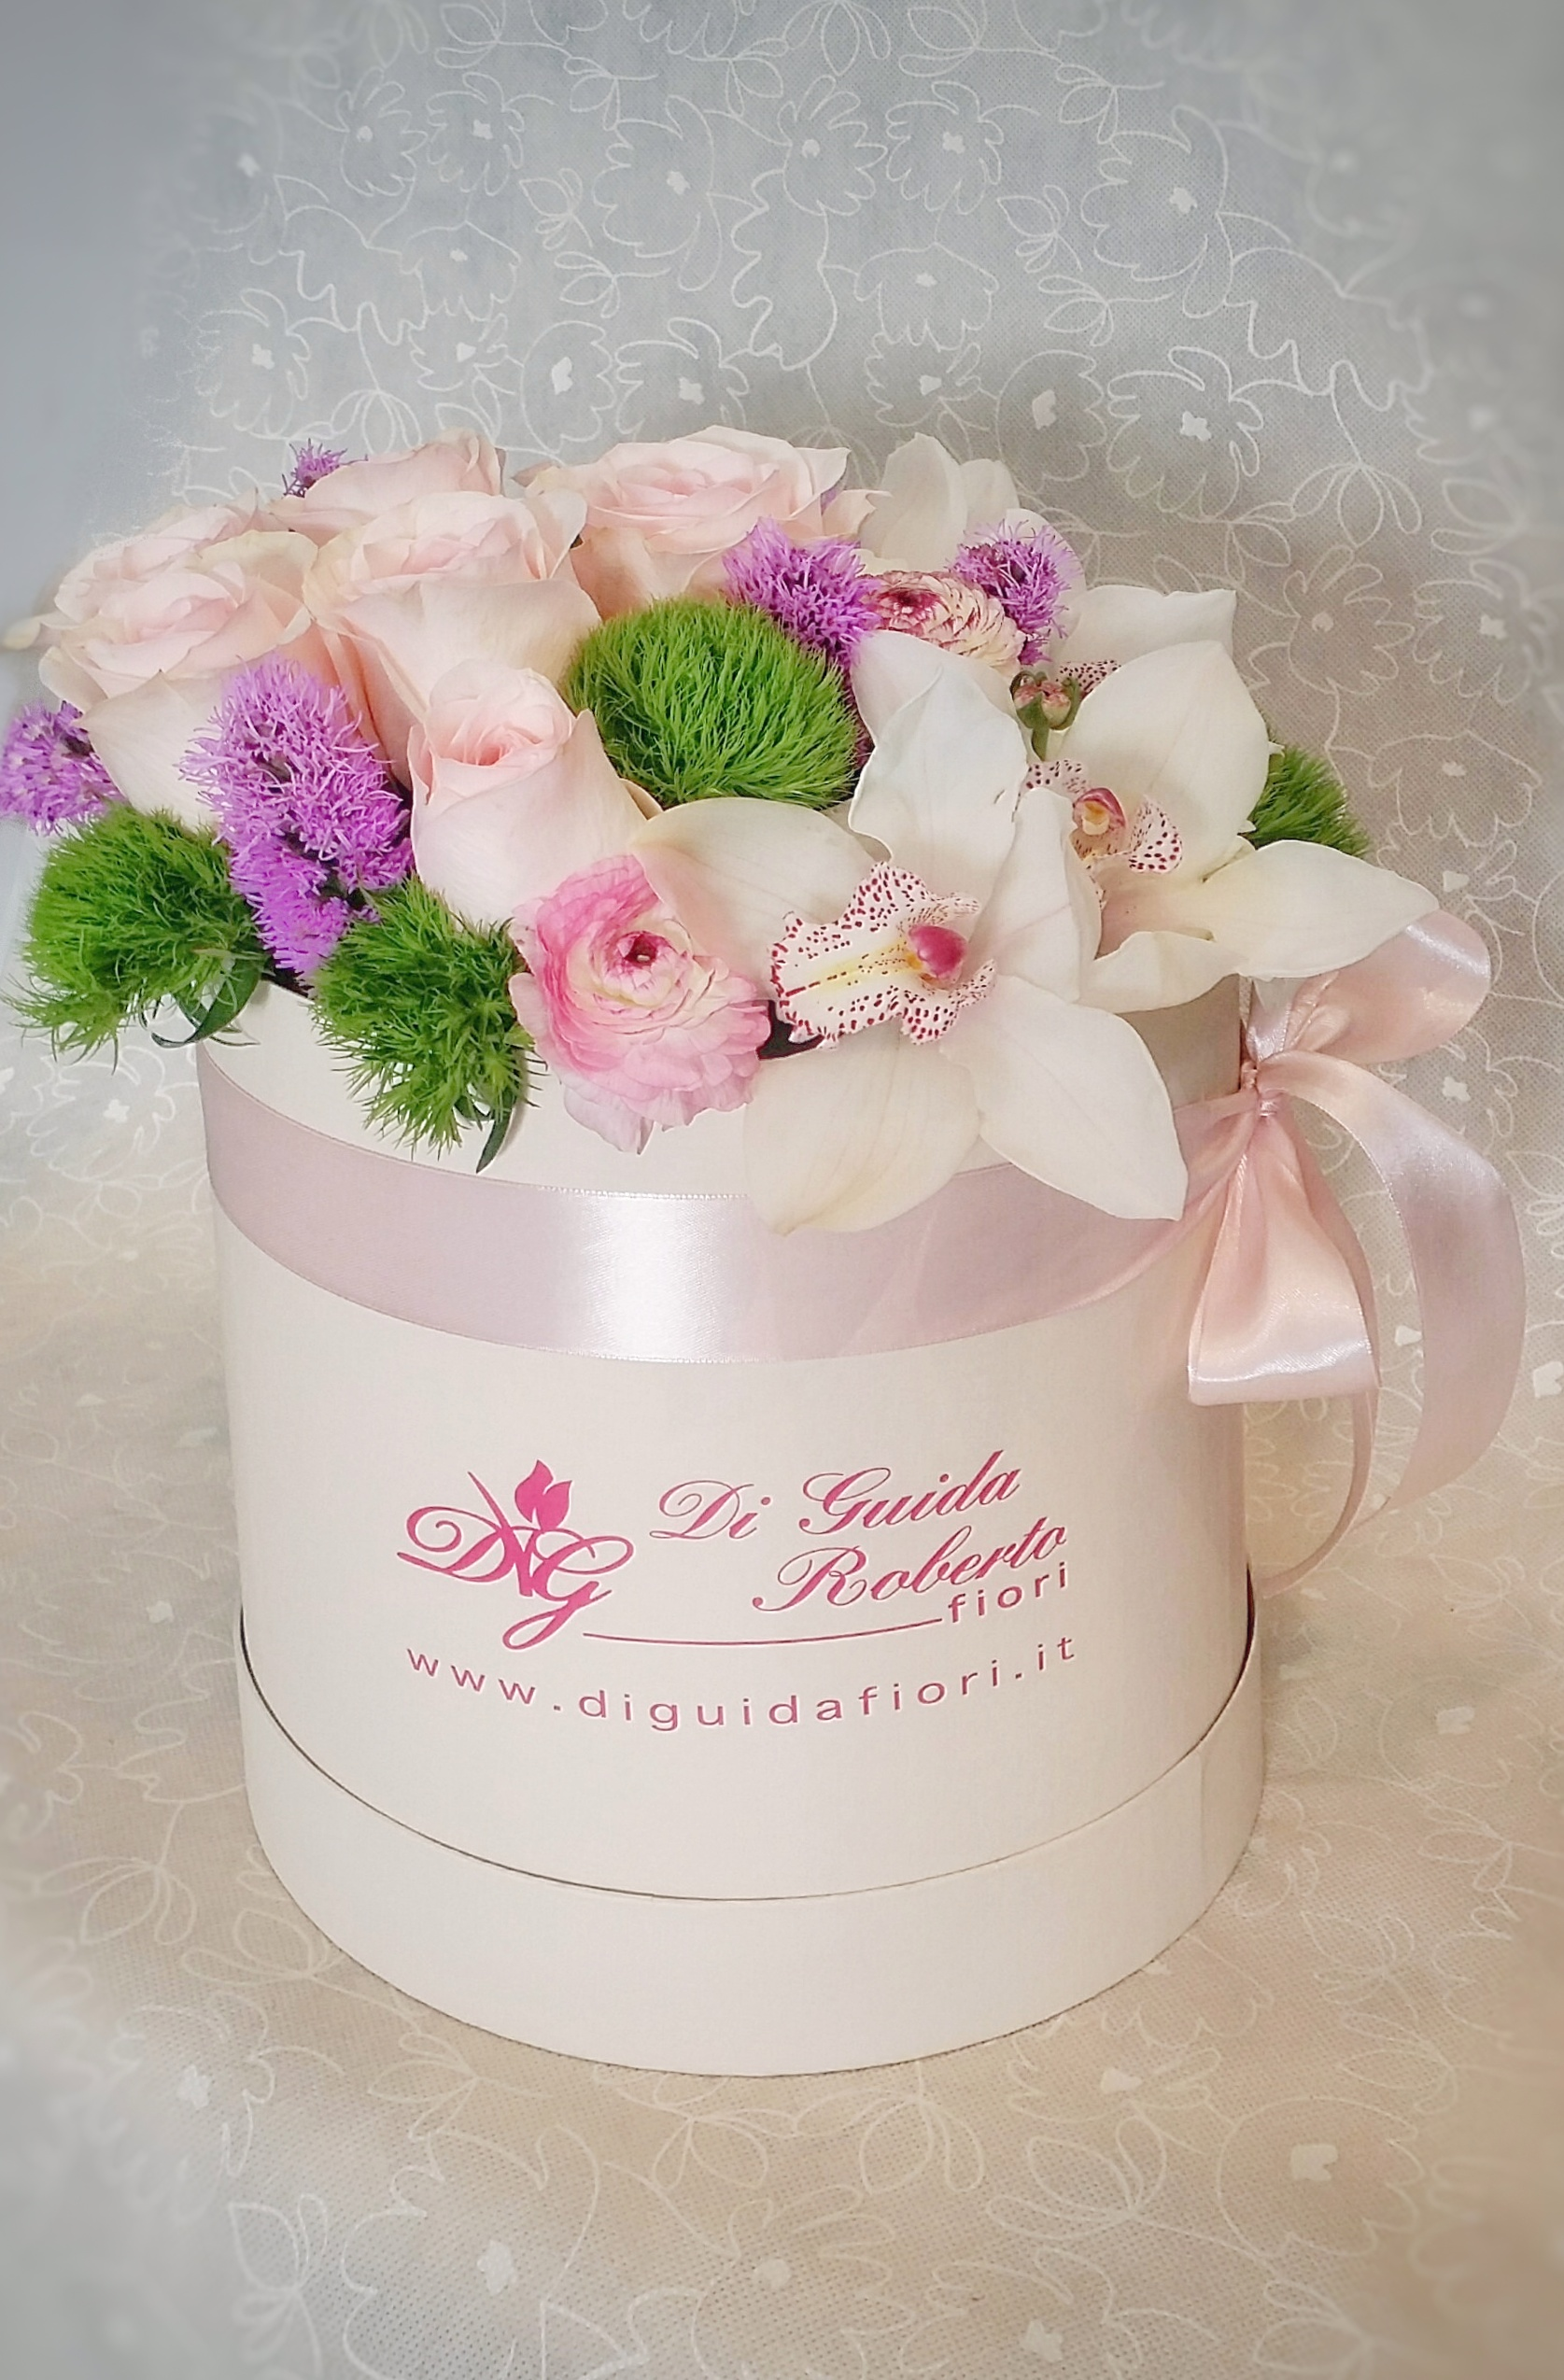 Fiori in scatola?- Flowers in a gift box